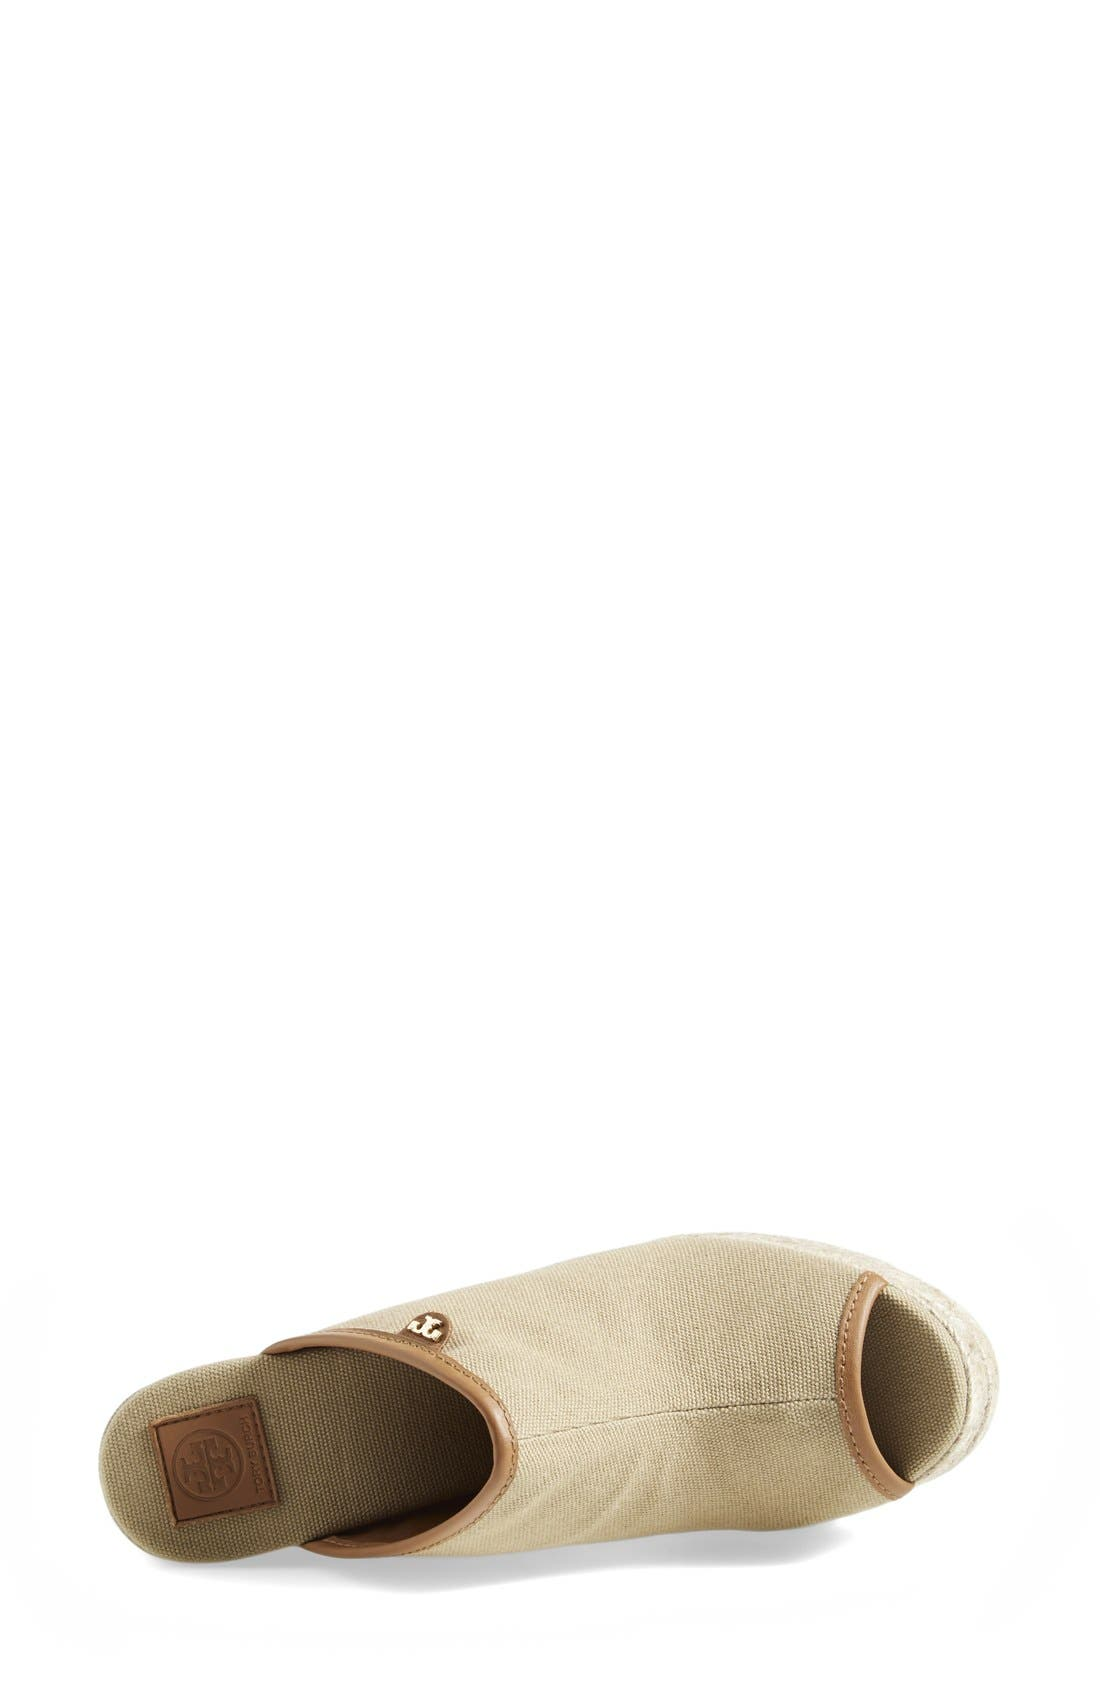 Alternate Image 3  - Tory Burch Canvas Wedge Sandal (Women)